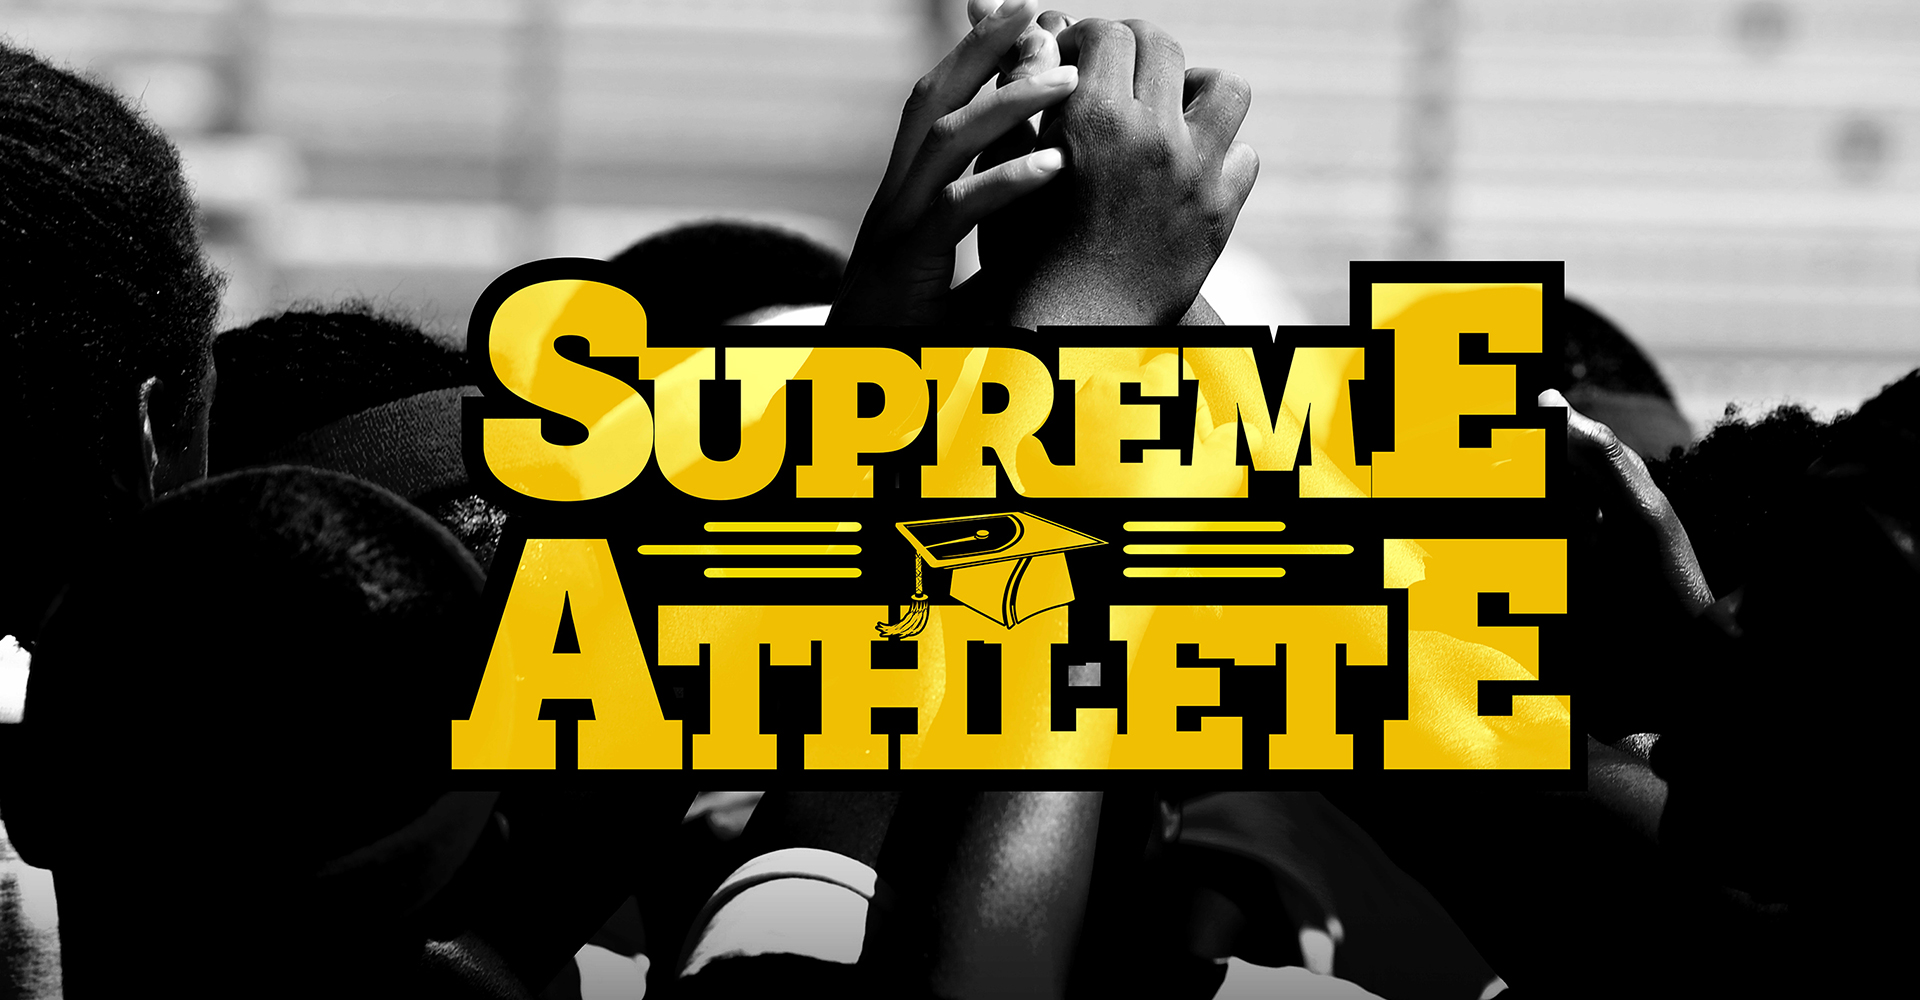 Supreme Athlete